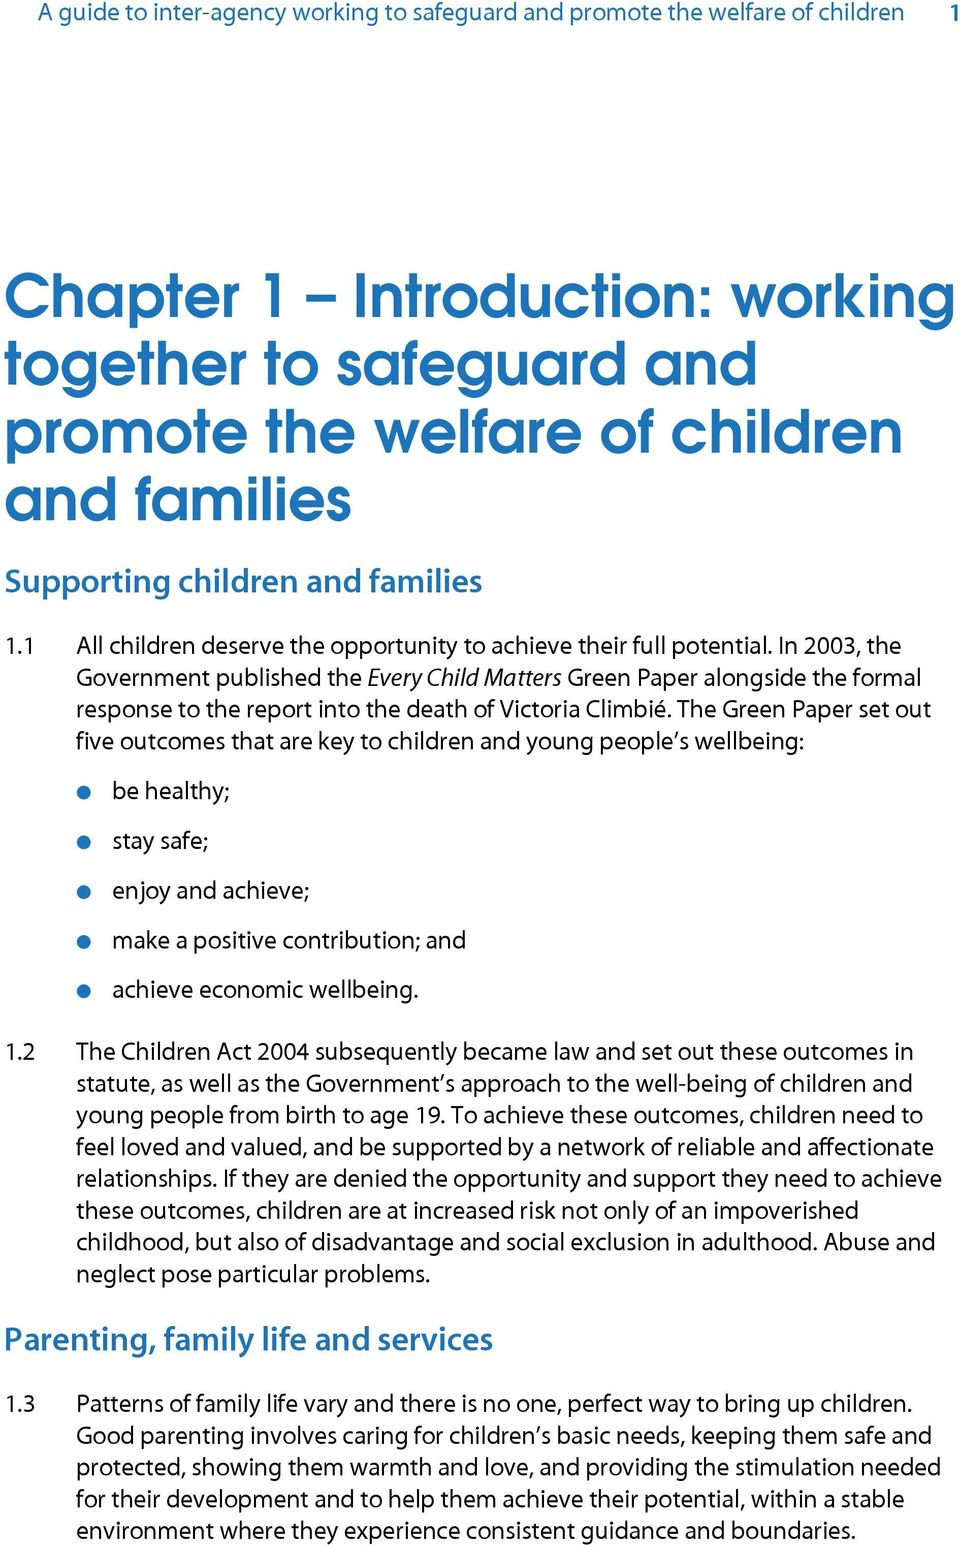 working together to safeguard children a guide to interagency working to safeguard and promote the welfare of children